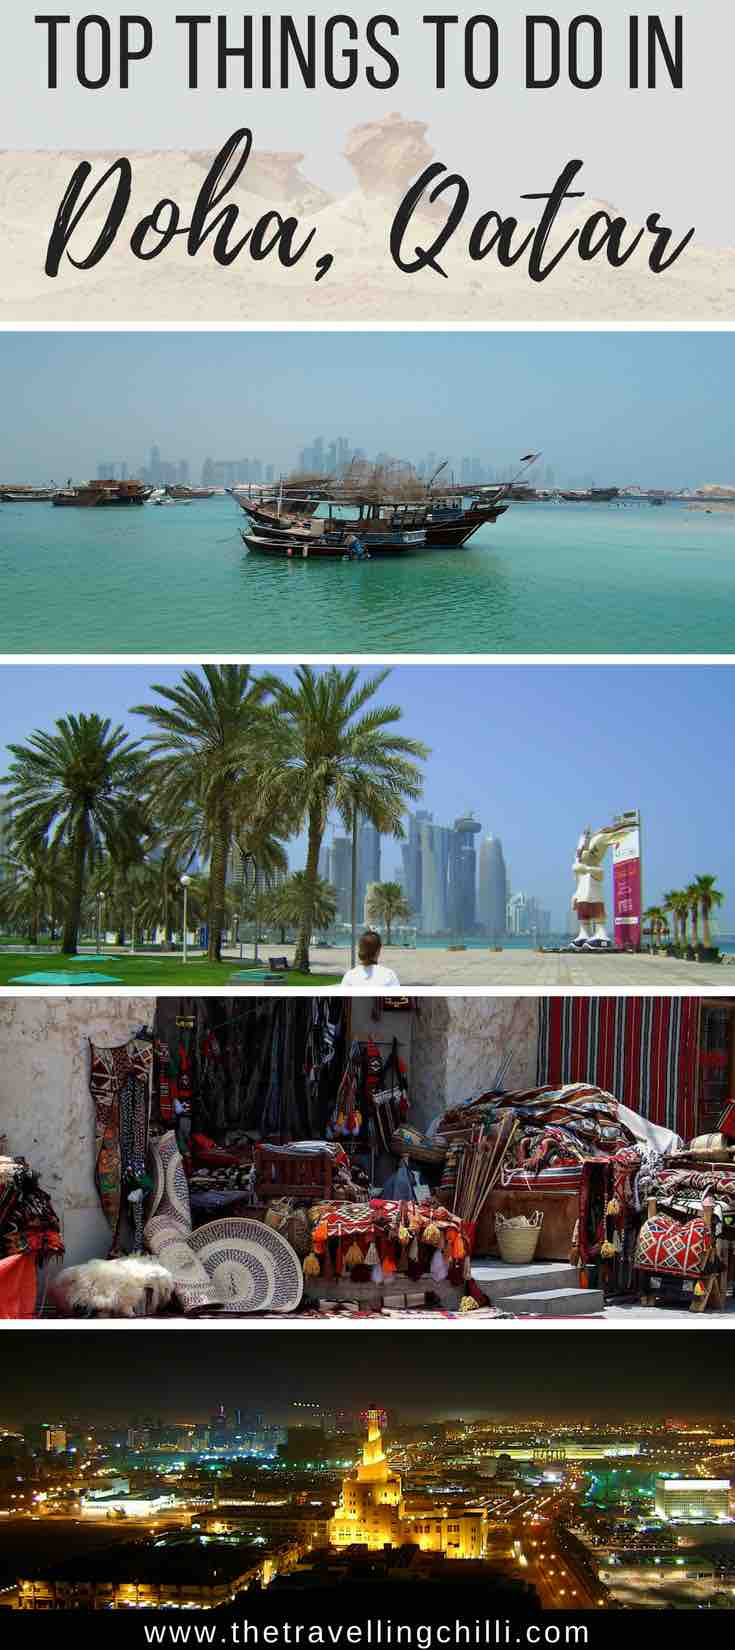 Top things to do in Doha Qatar